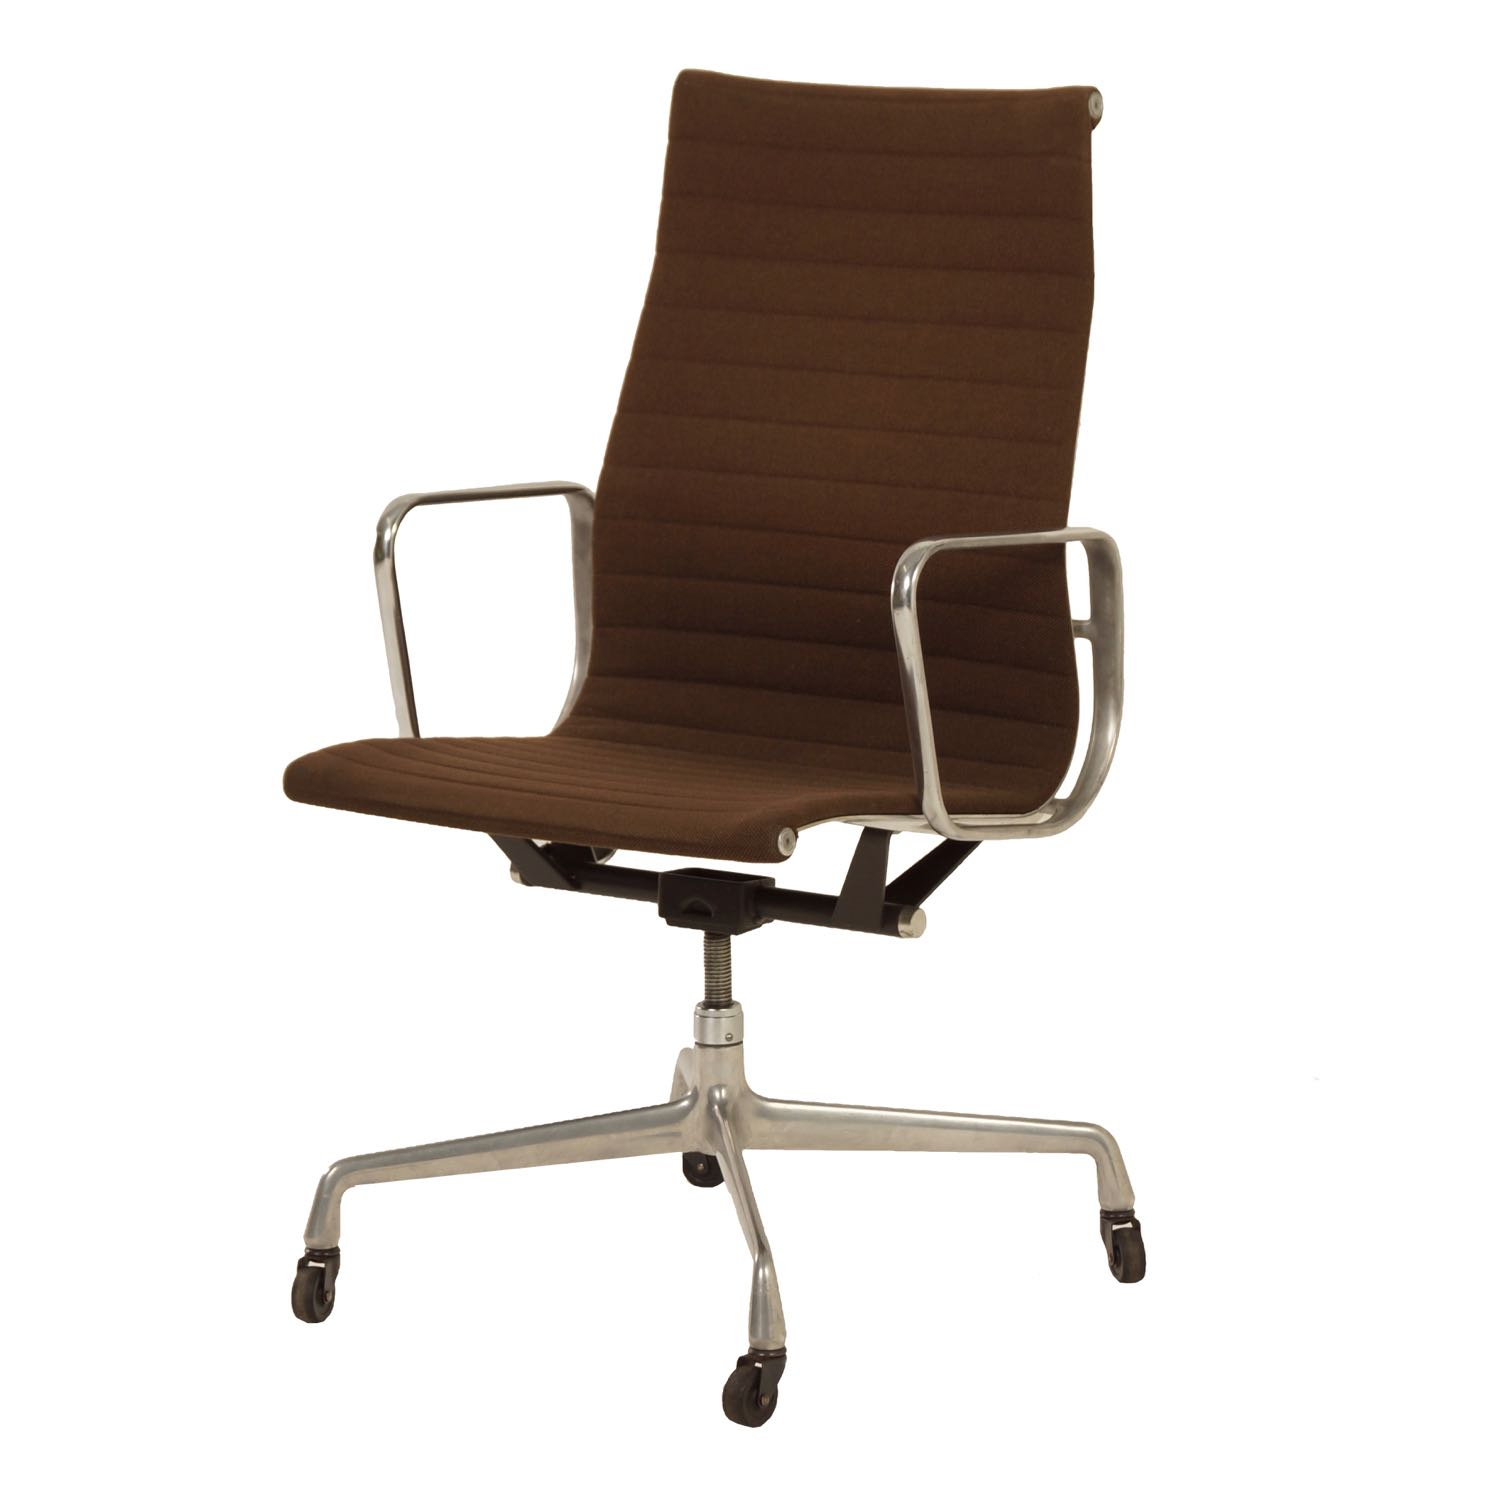 Original Brown Eames Office Chair by Charles and Ray Eames for Herman Miller, 1960s | Mid Century Design